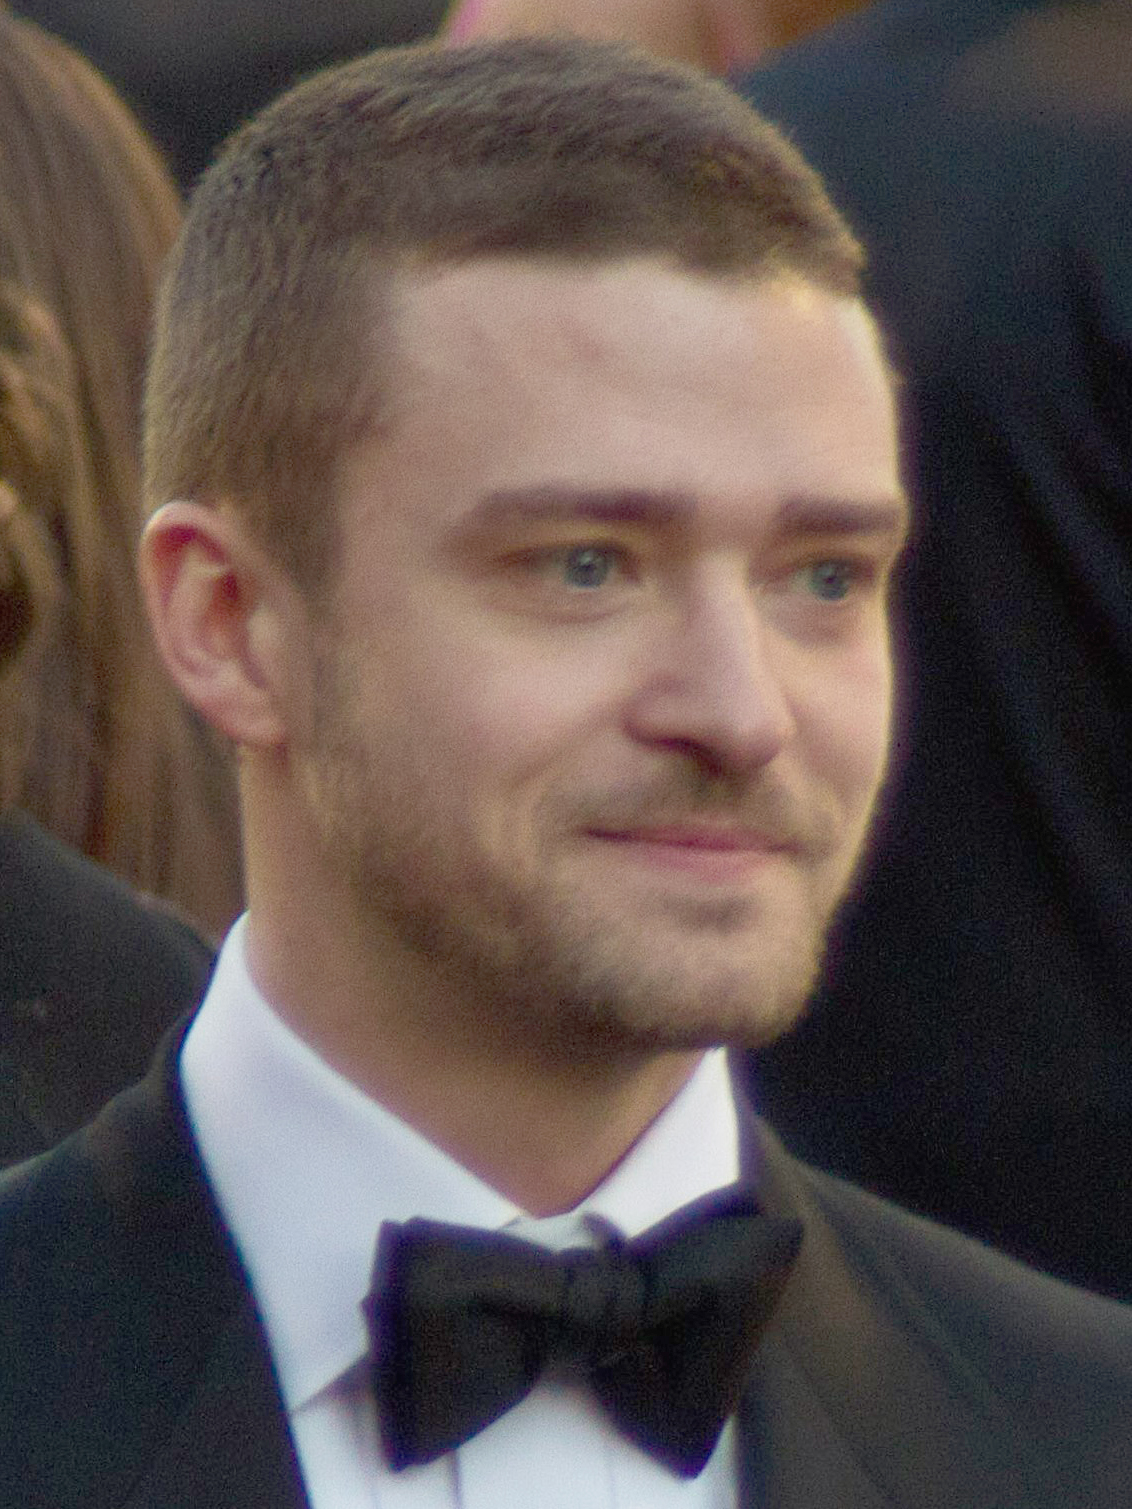 Justin Timberlake Simple English Wikipedia The Free Encyclopedia